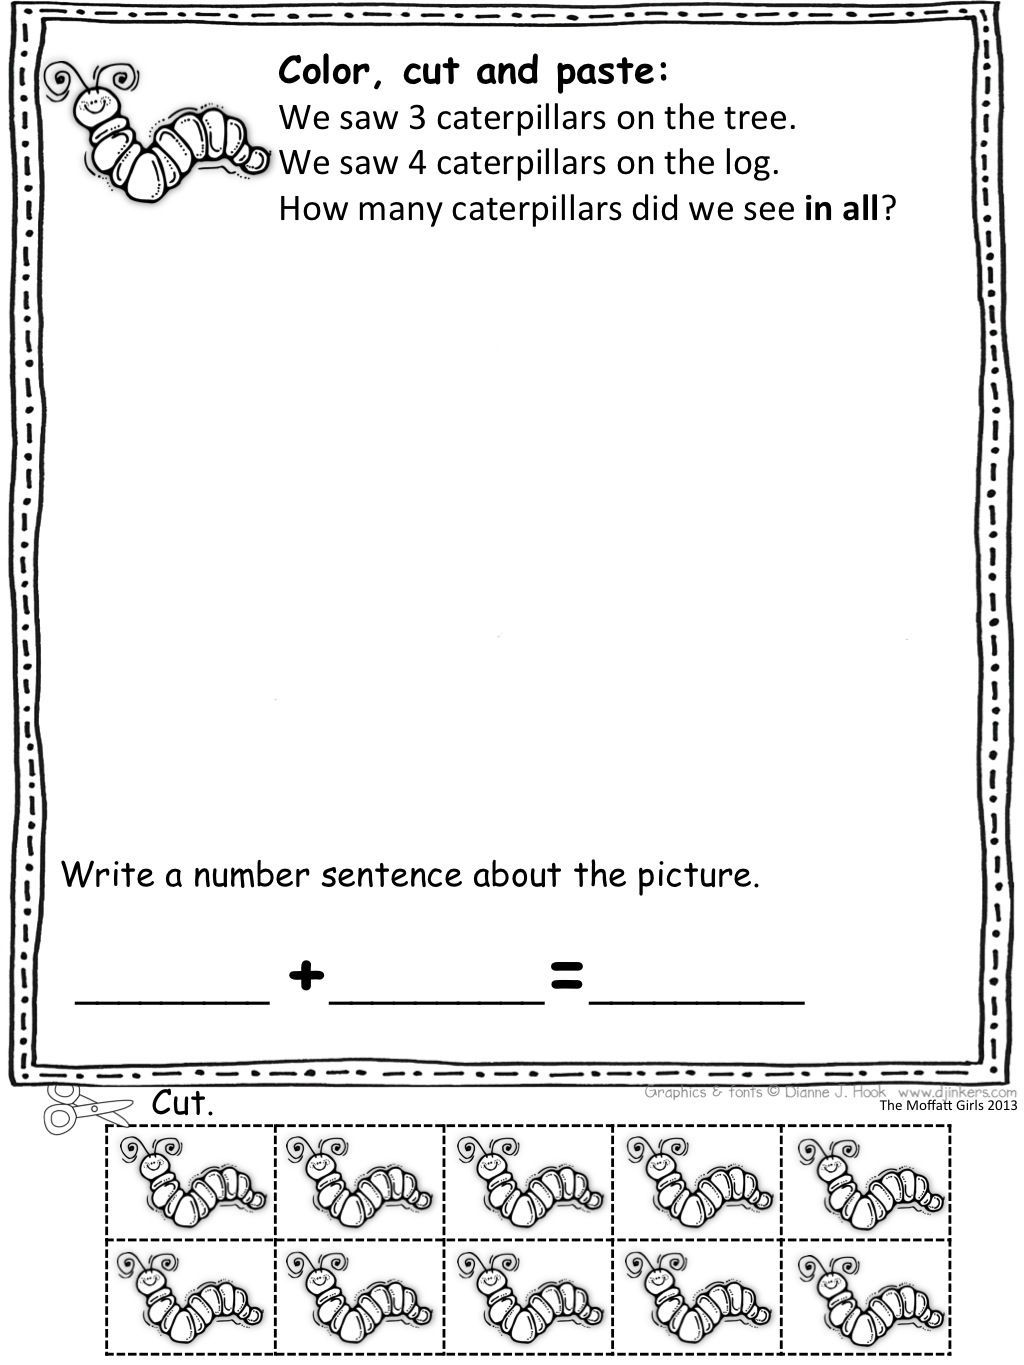 Addition Word Problems Kindergarten Worksheets Printable Worksheets Are A Precious School Room Tool In 2021 Math Word Problems Word Problems Kindergarten Math Words Addition word problems for kinder